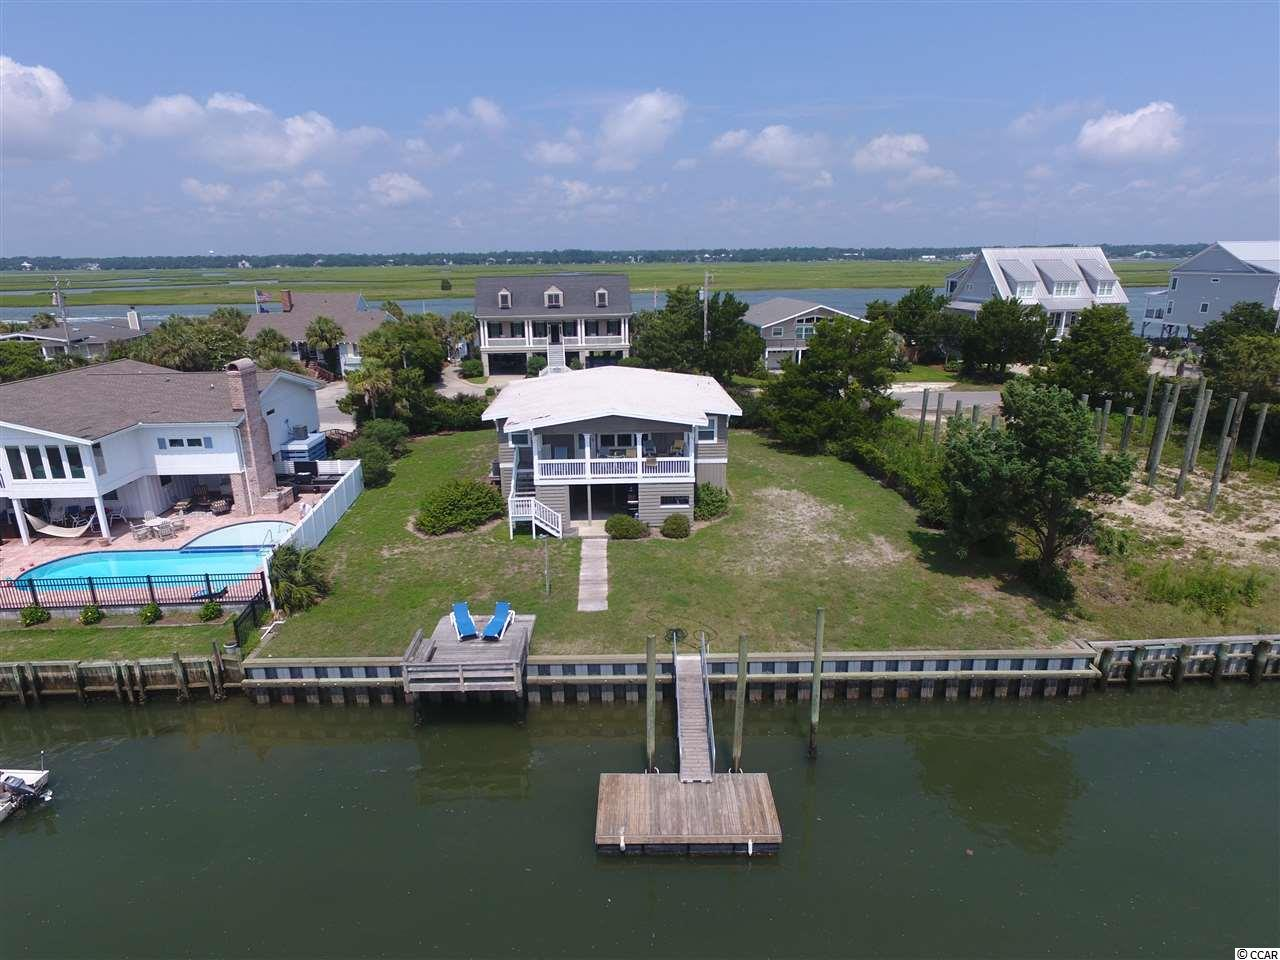 Looking for your very own creek house without spending a fortune?  Look no further as 1935 Pompano Drive has a private dock in Oyster Cove located on the South end of Garden City Beach.  This home has a classic beach home design but underwent extensive renovations in late 2015/early 2016.  It's got a great beach home feel with some updates that make it more modern. Contact the listing agent, or your Realtor, for more details or to set up a private showing.